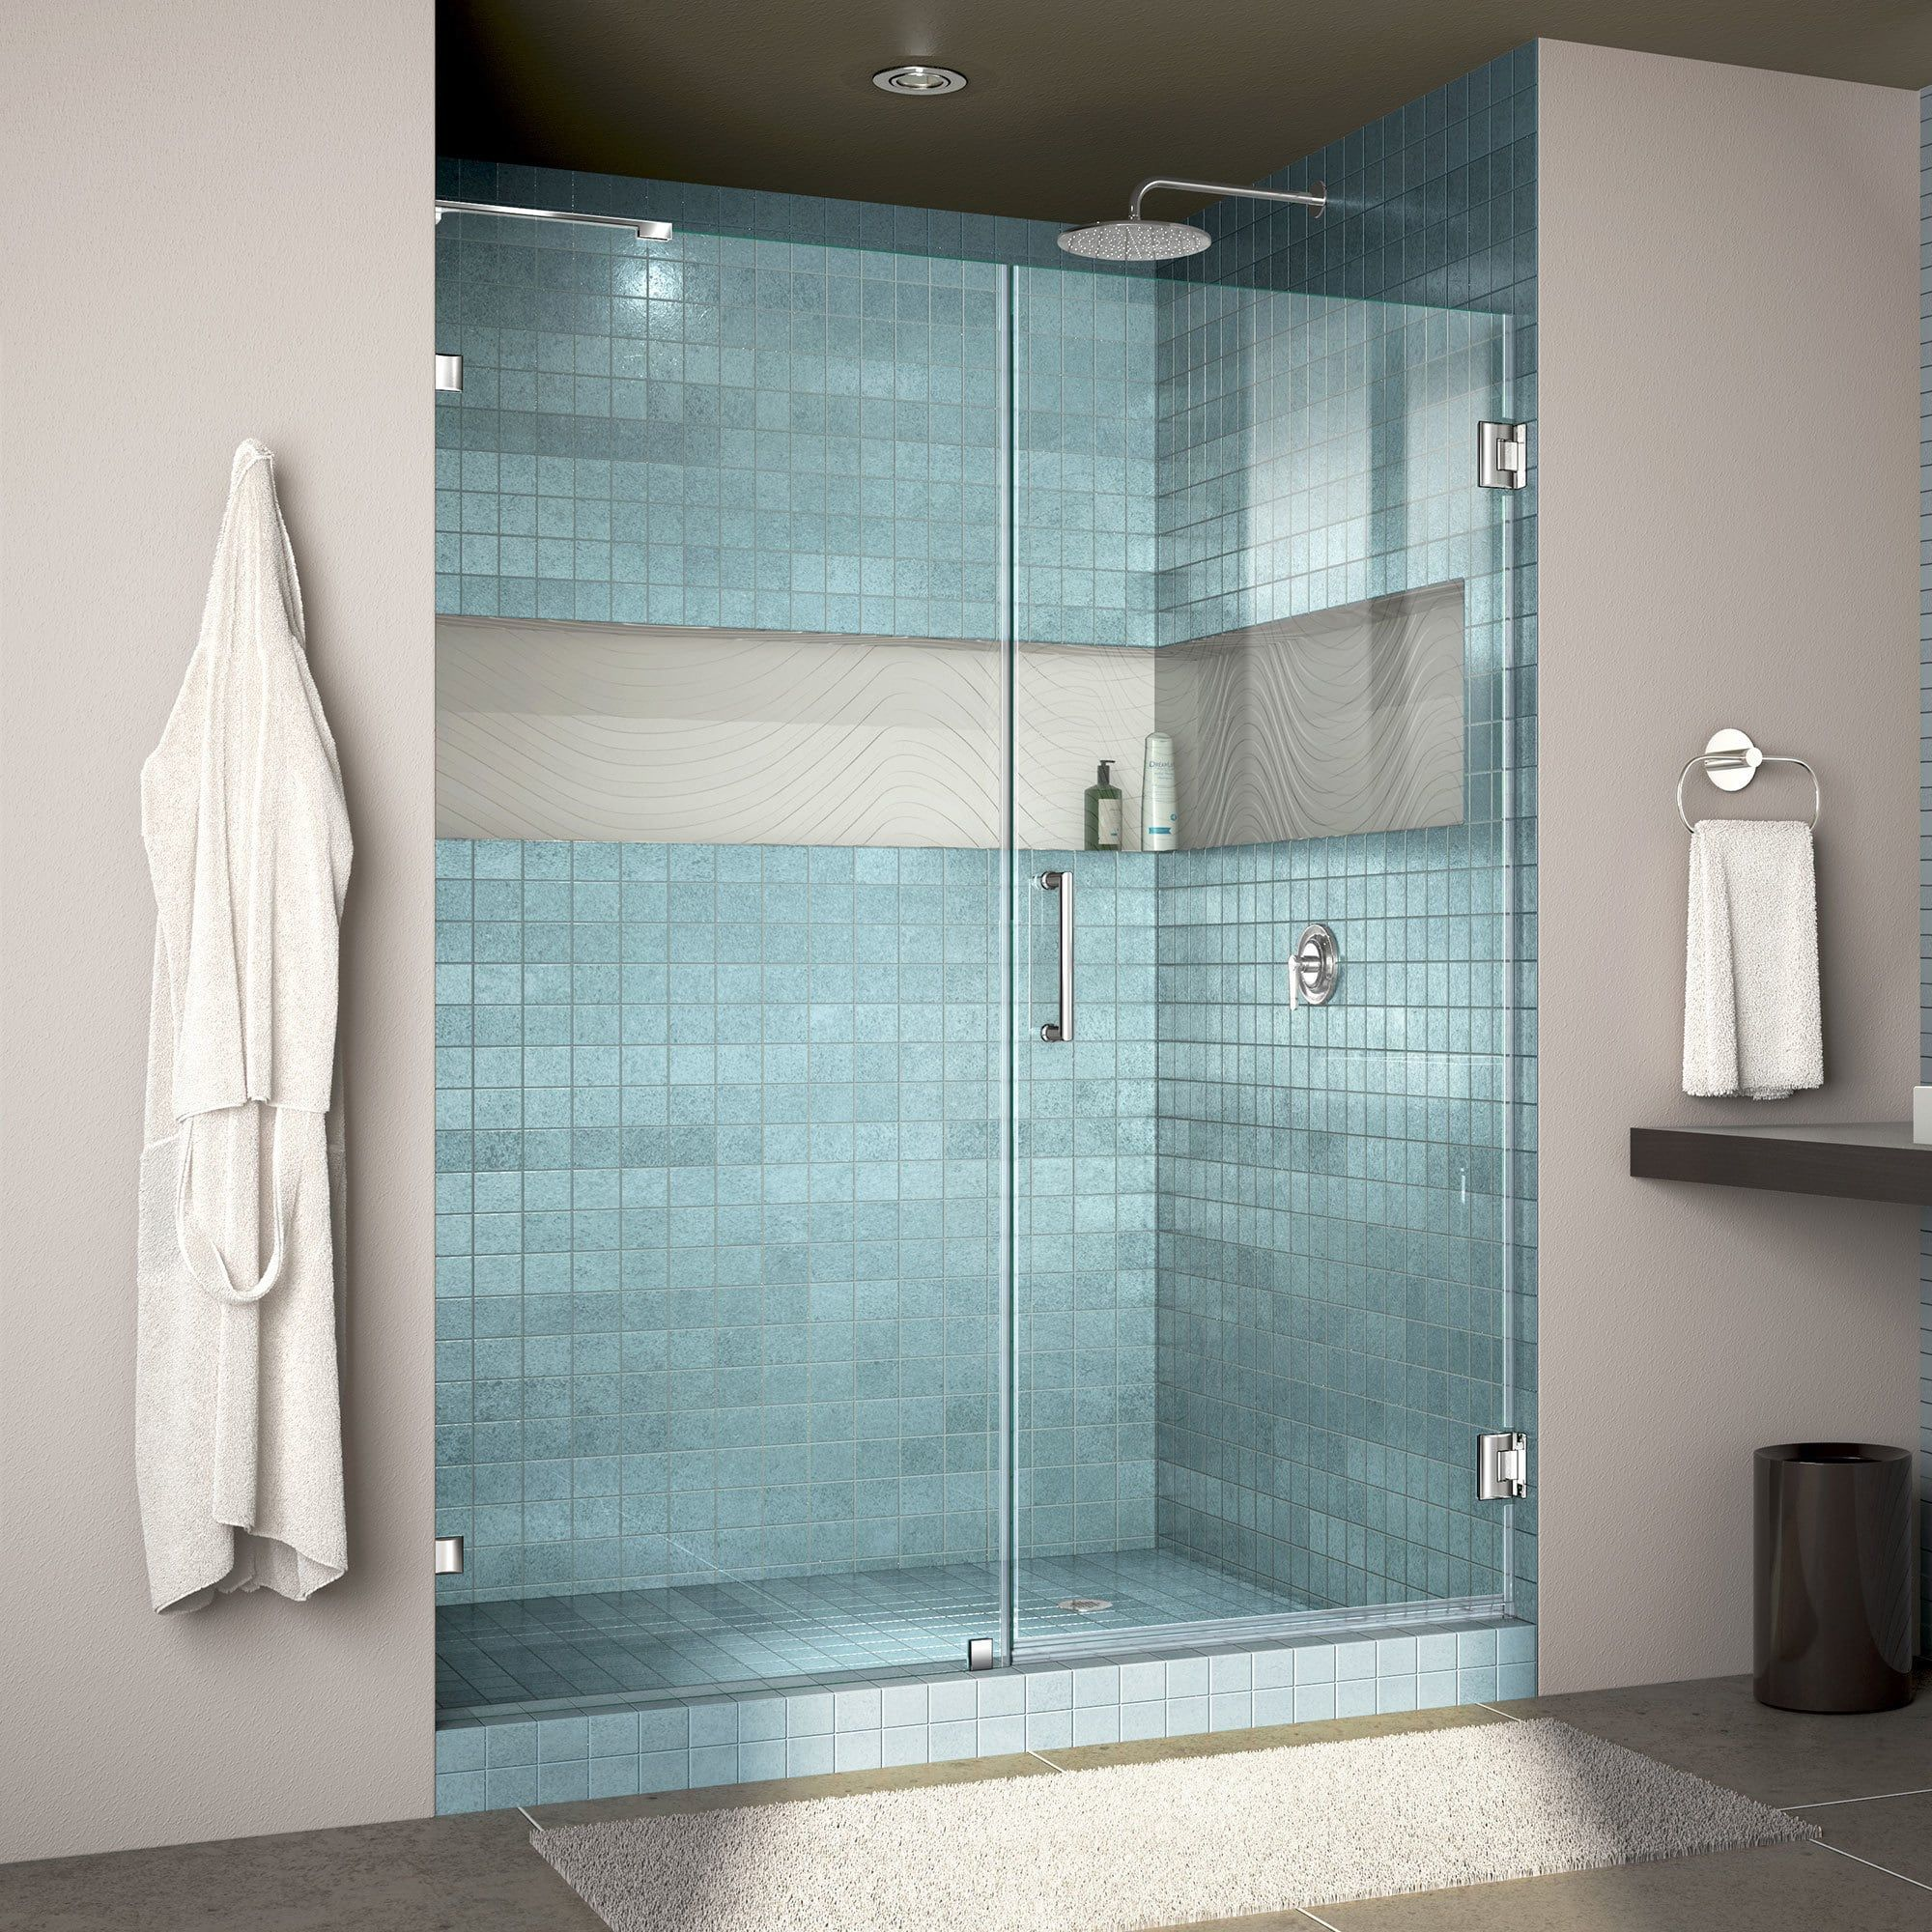 Dreamline Unidoor Lux 53 In W X 72 In H Fully Frameless Hinged